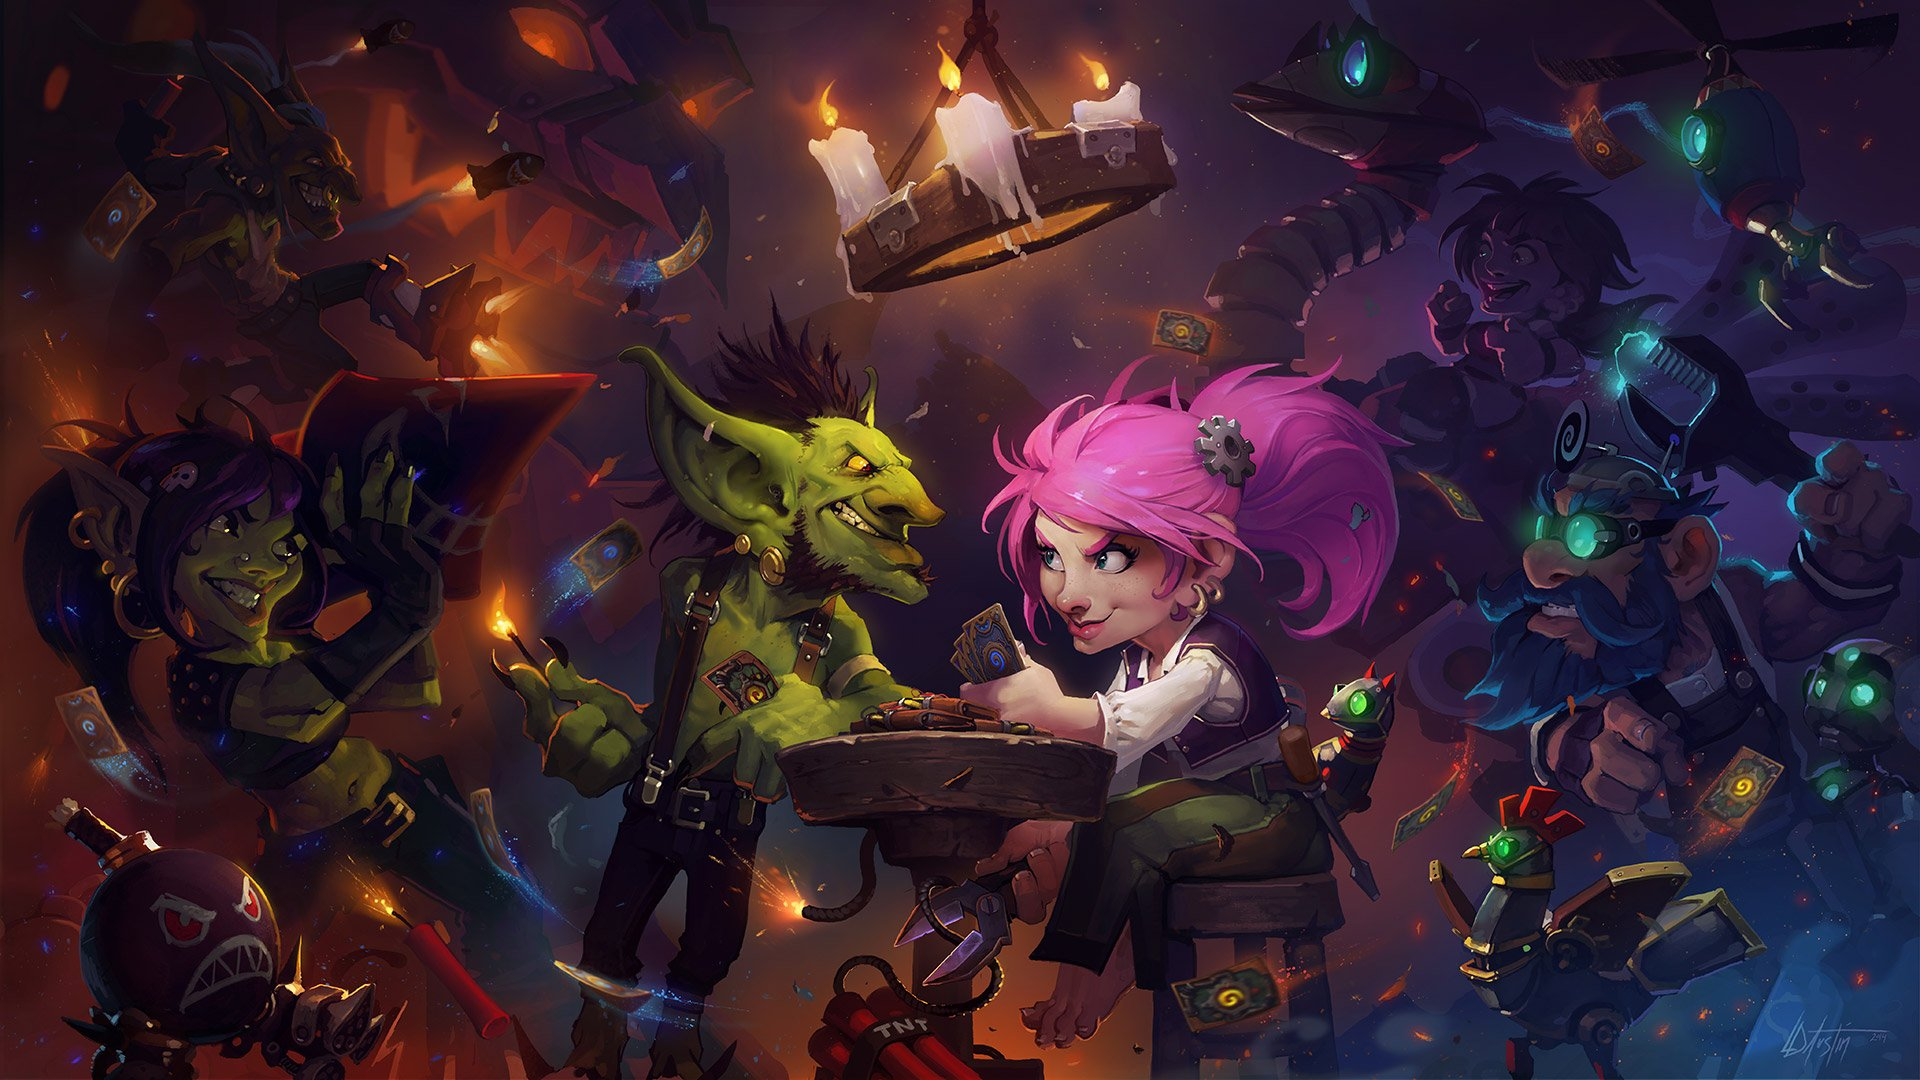 Goblins vs Gnomos KeyArt Oficial - Wallpaper Papel de Parede - Hearthstone